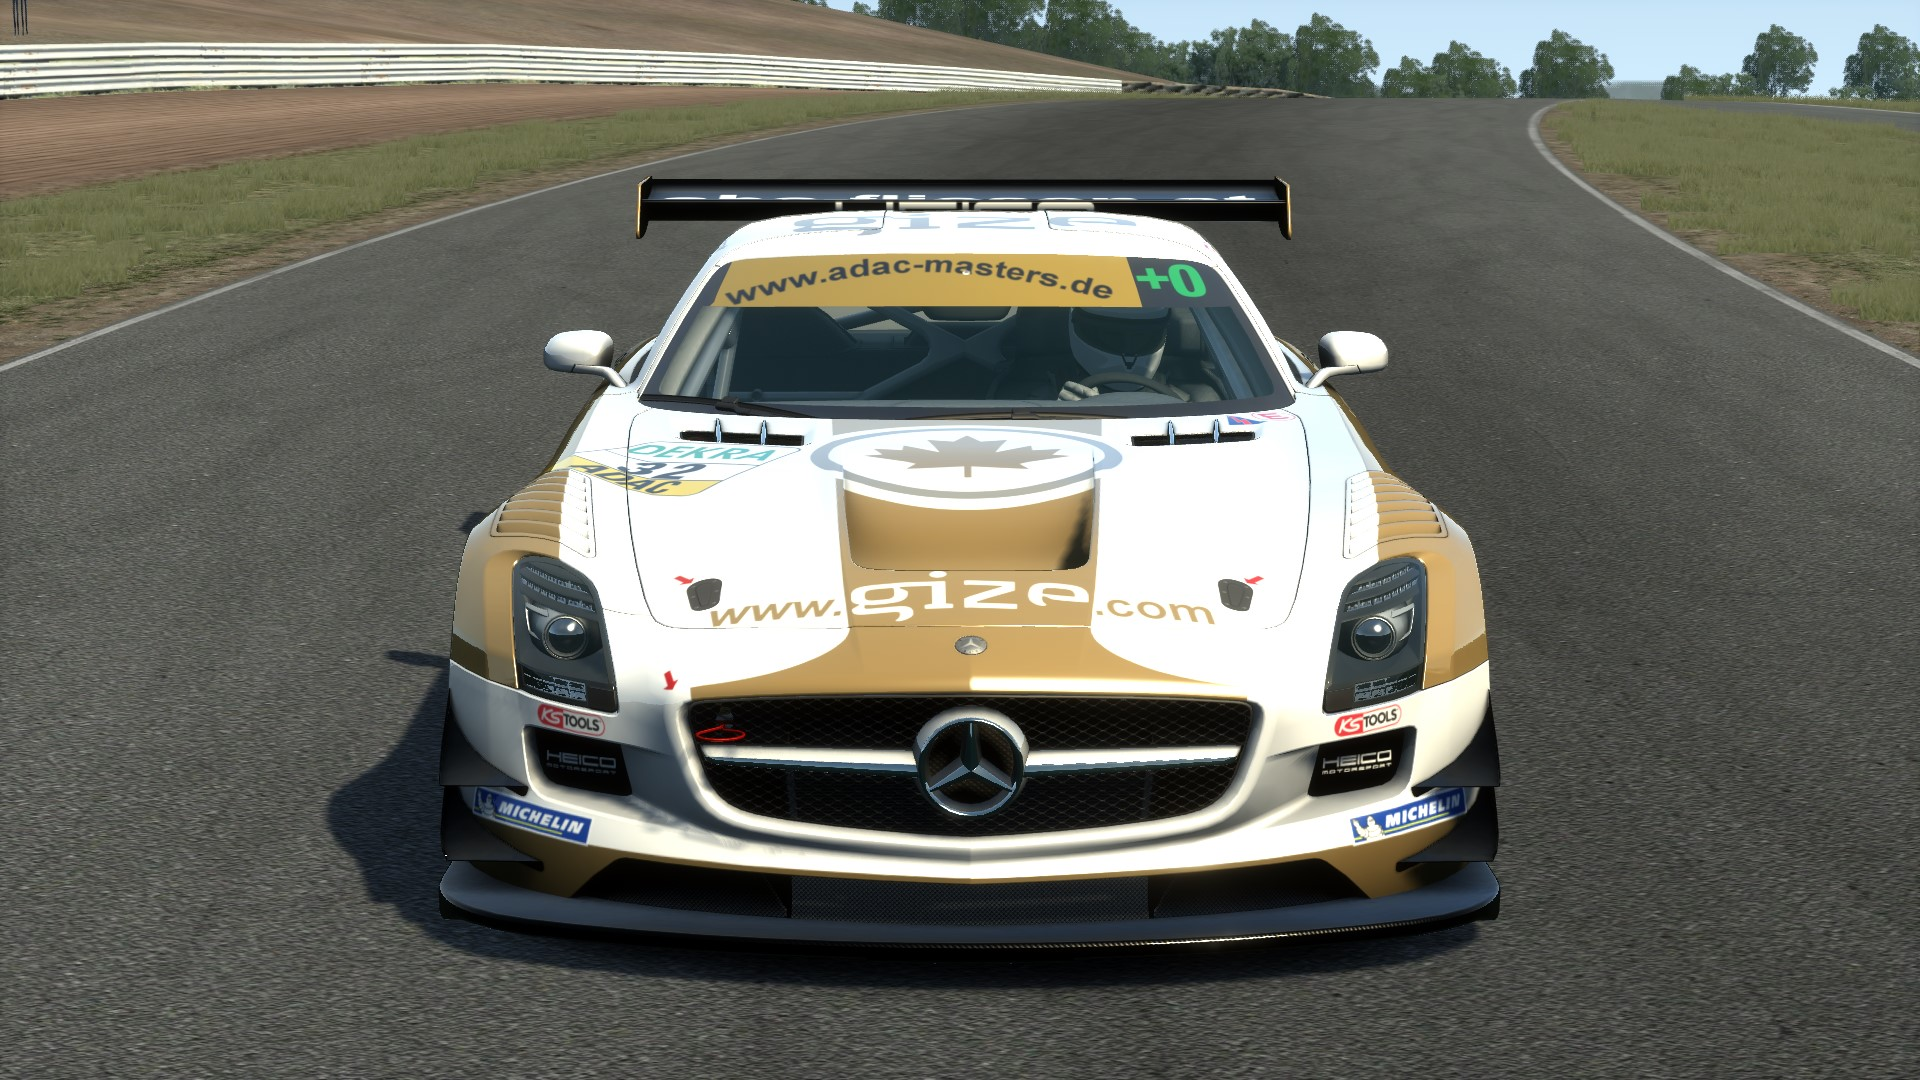 Screenshot_mercedes_sls_gt3_baskerville_beta_08_21-1-116-20-50-6.jpg